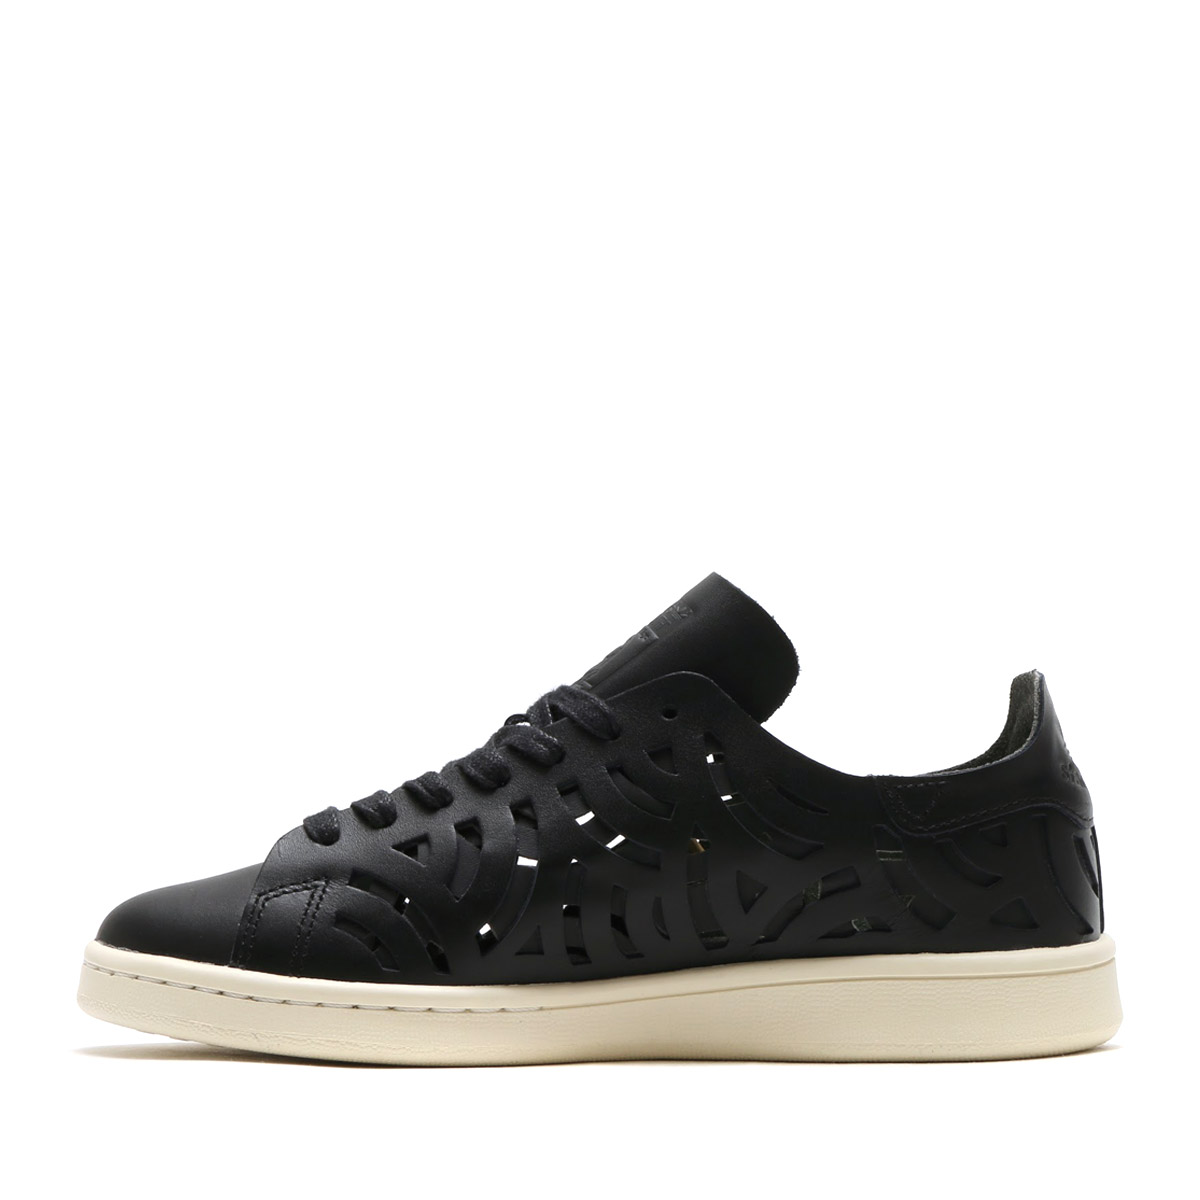 adidas Originals STAN SMITH CUTOUT W (Adidas originals Stan Smith cutout W) (Core Black/Core Black/Off White)